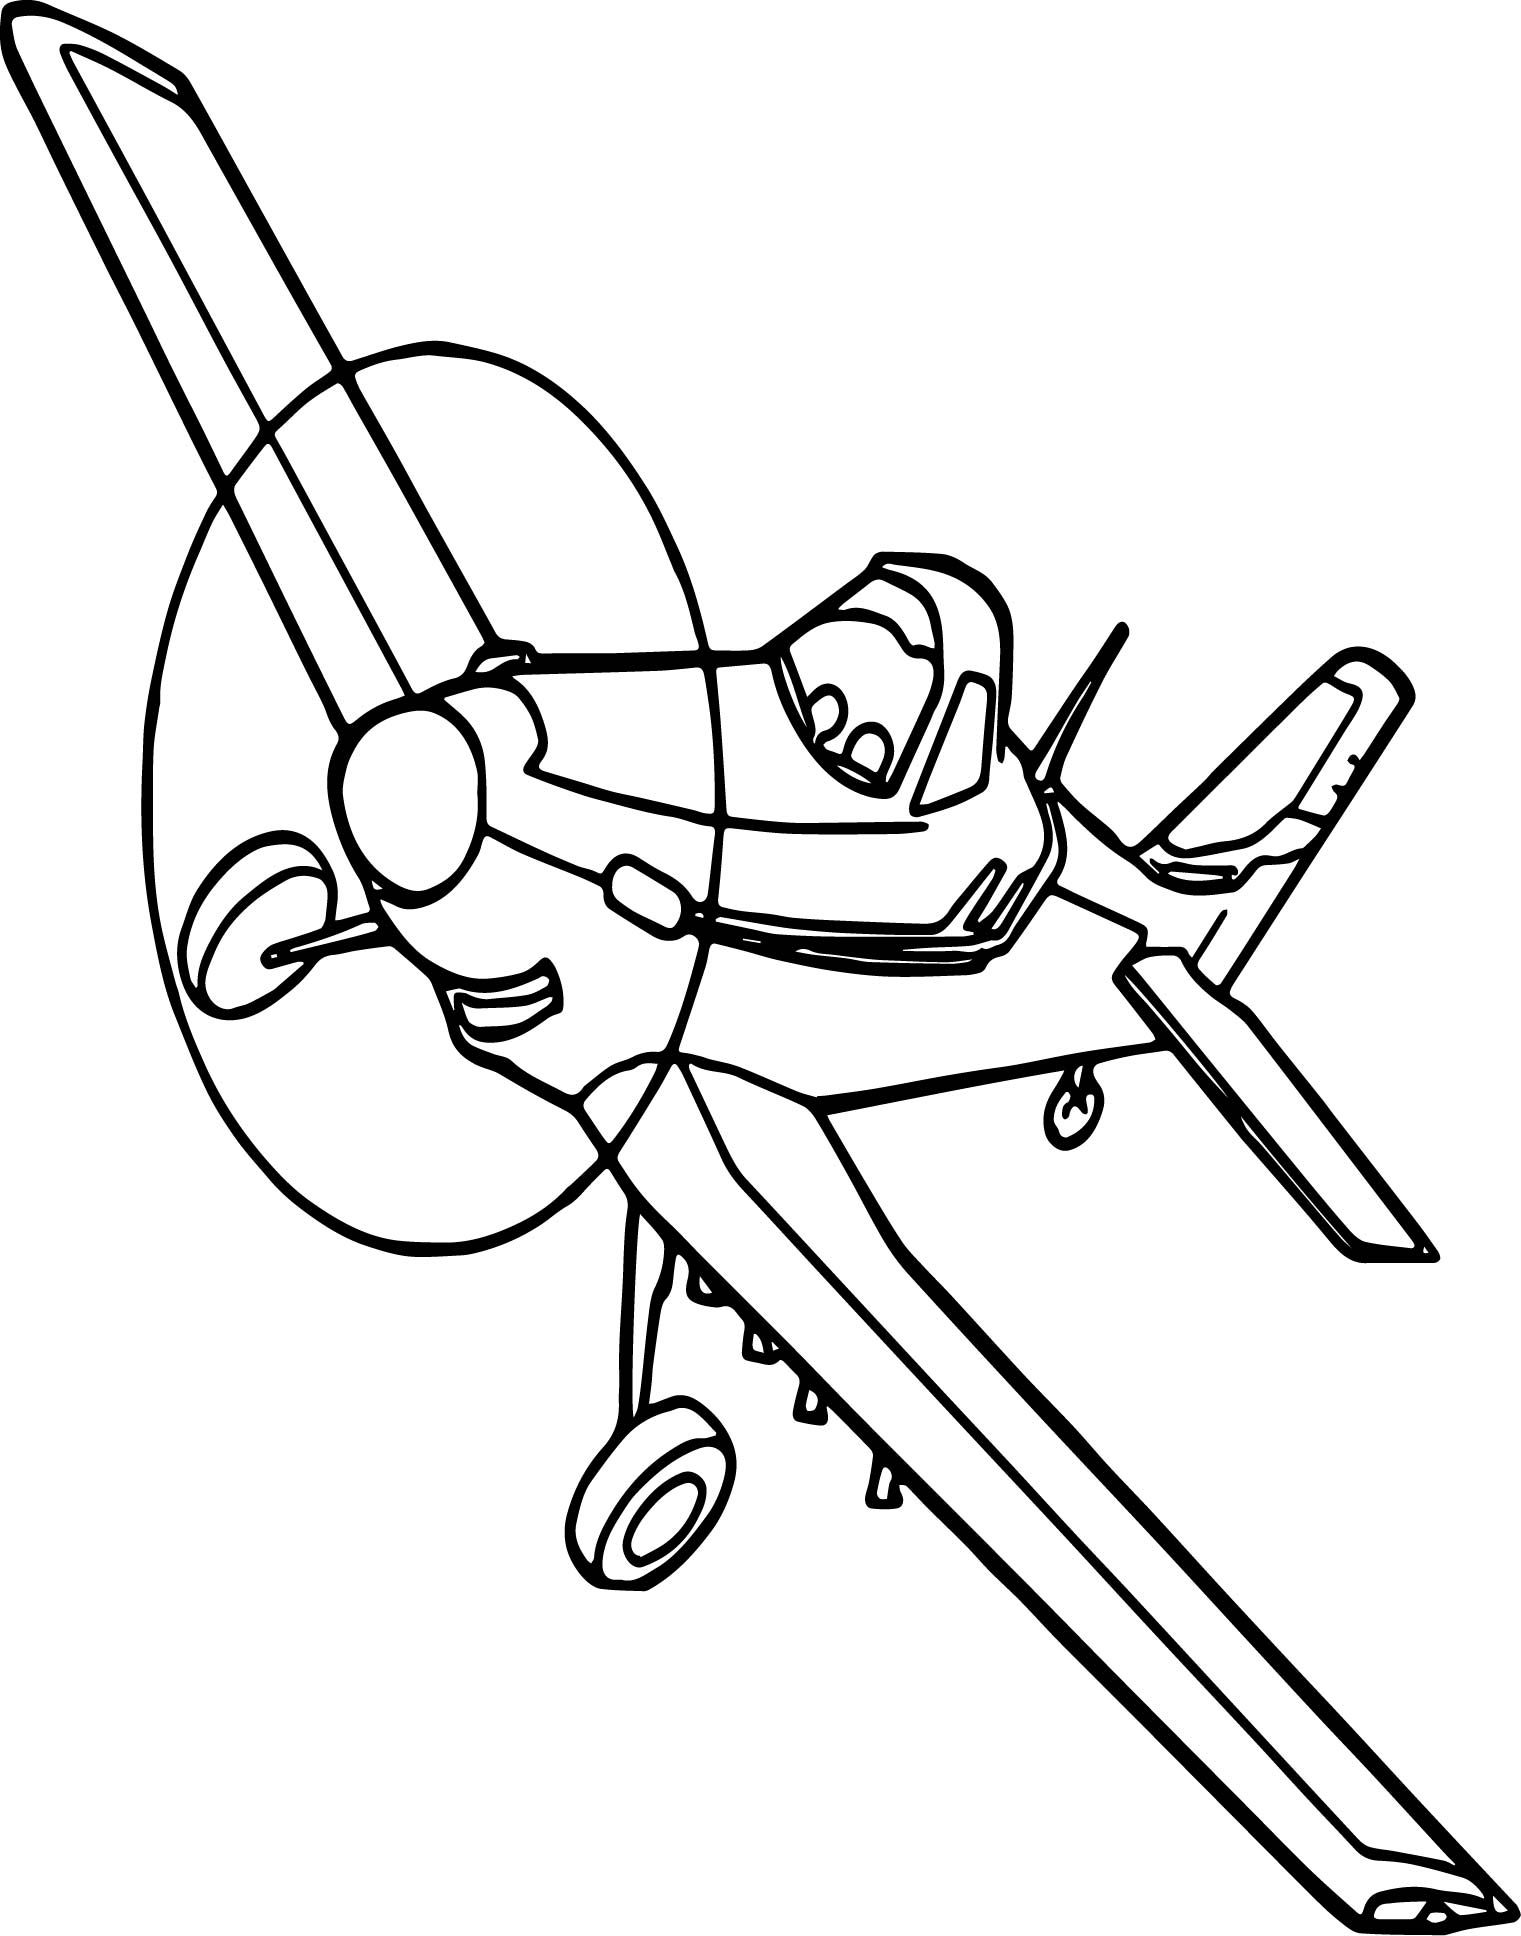 Awesome Disney Dusty Plane Coloring Pages